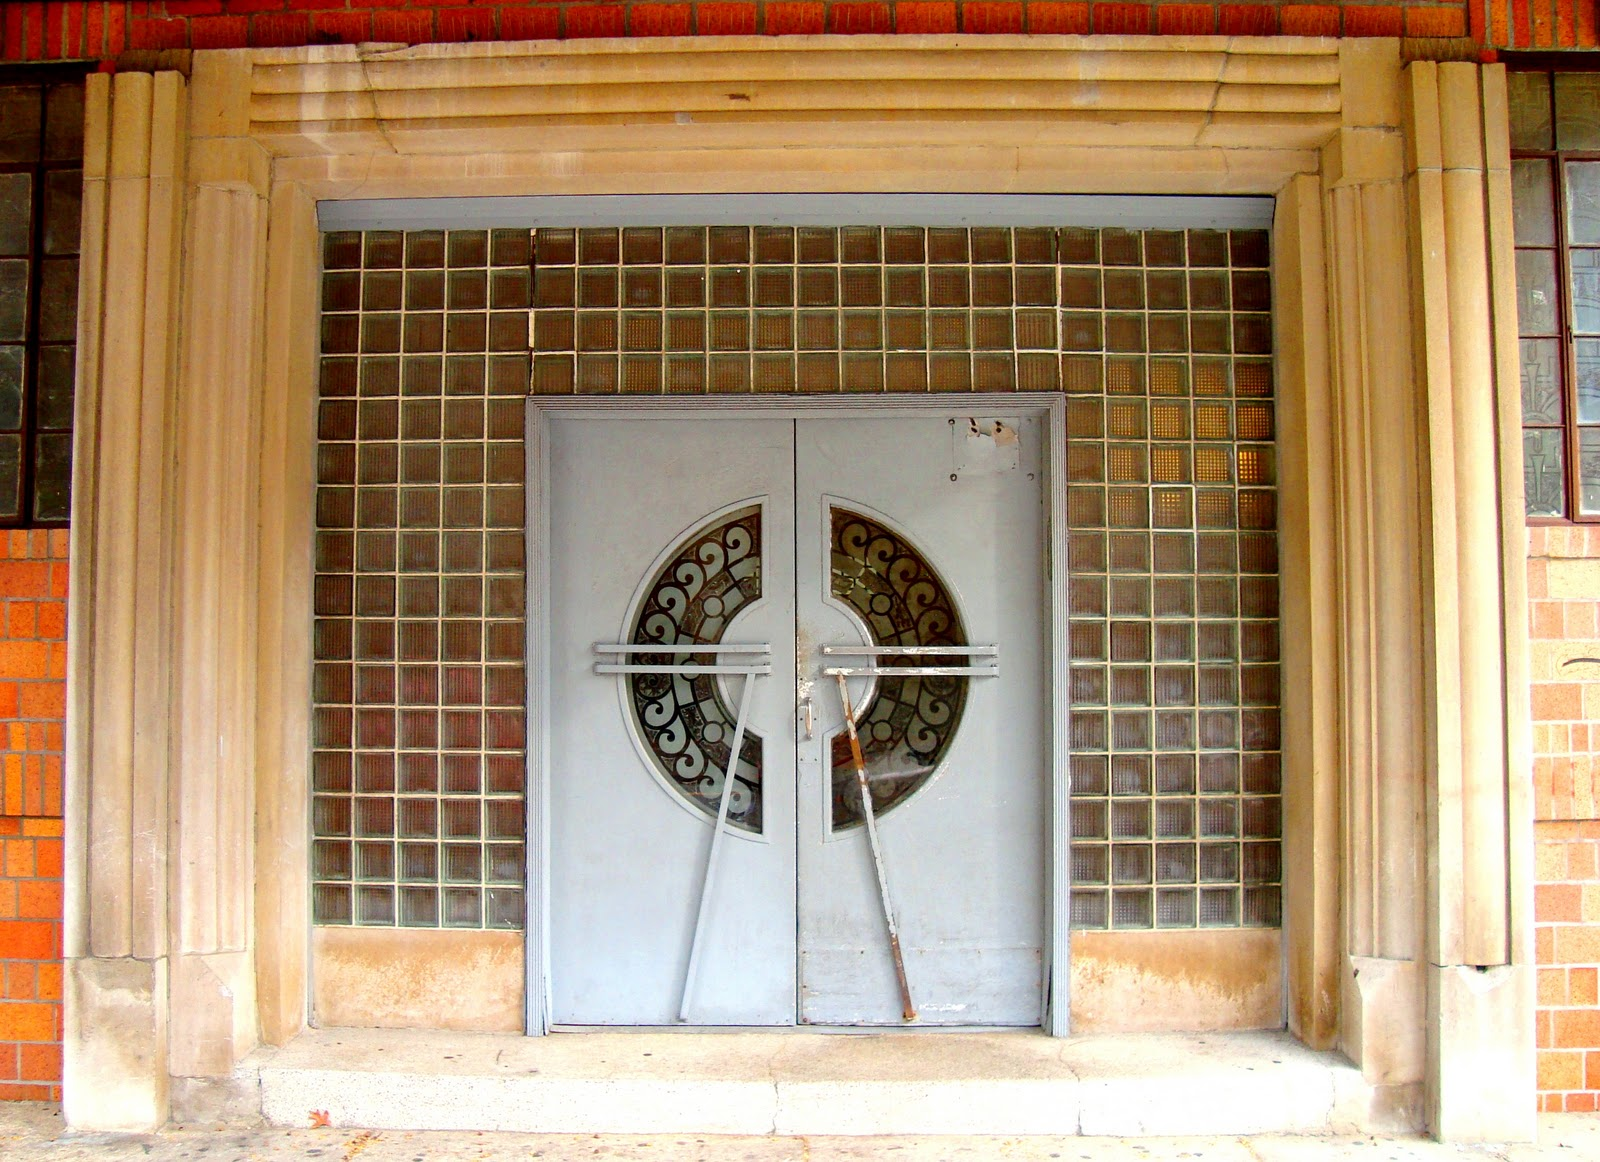 & David Cobb Craig: Art Deco Doors in N.Y.C.